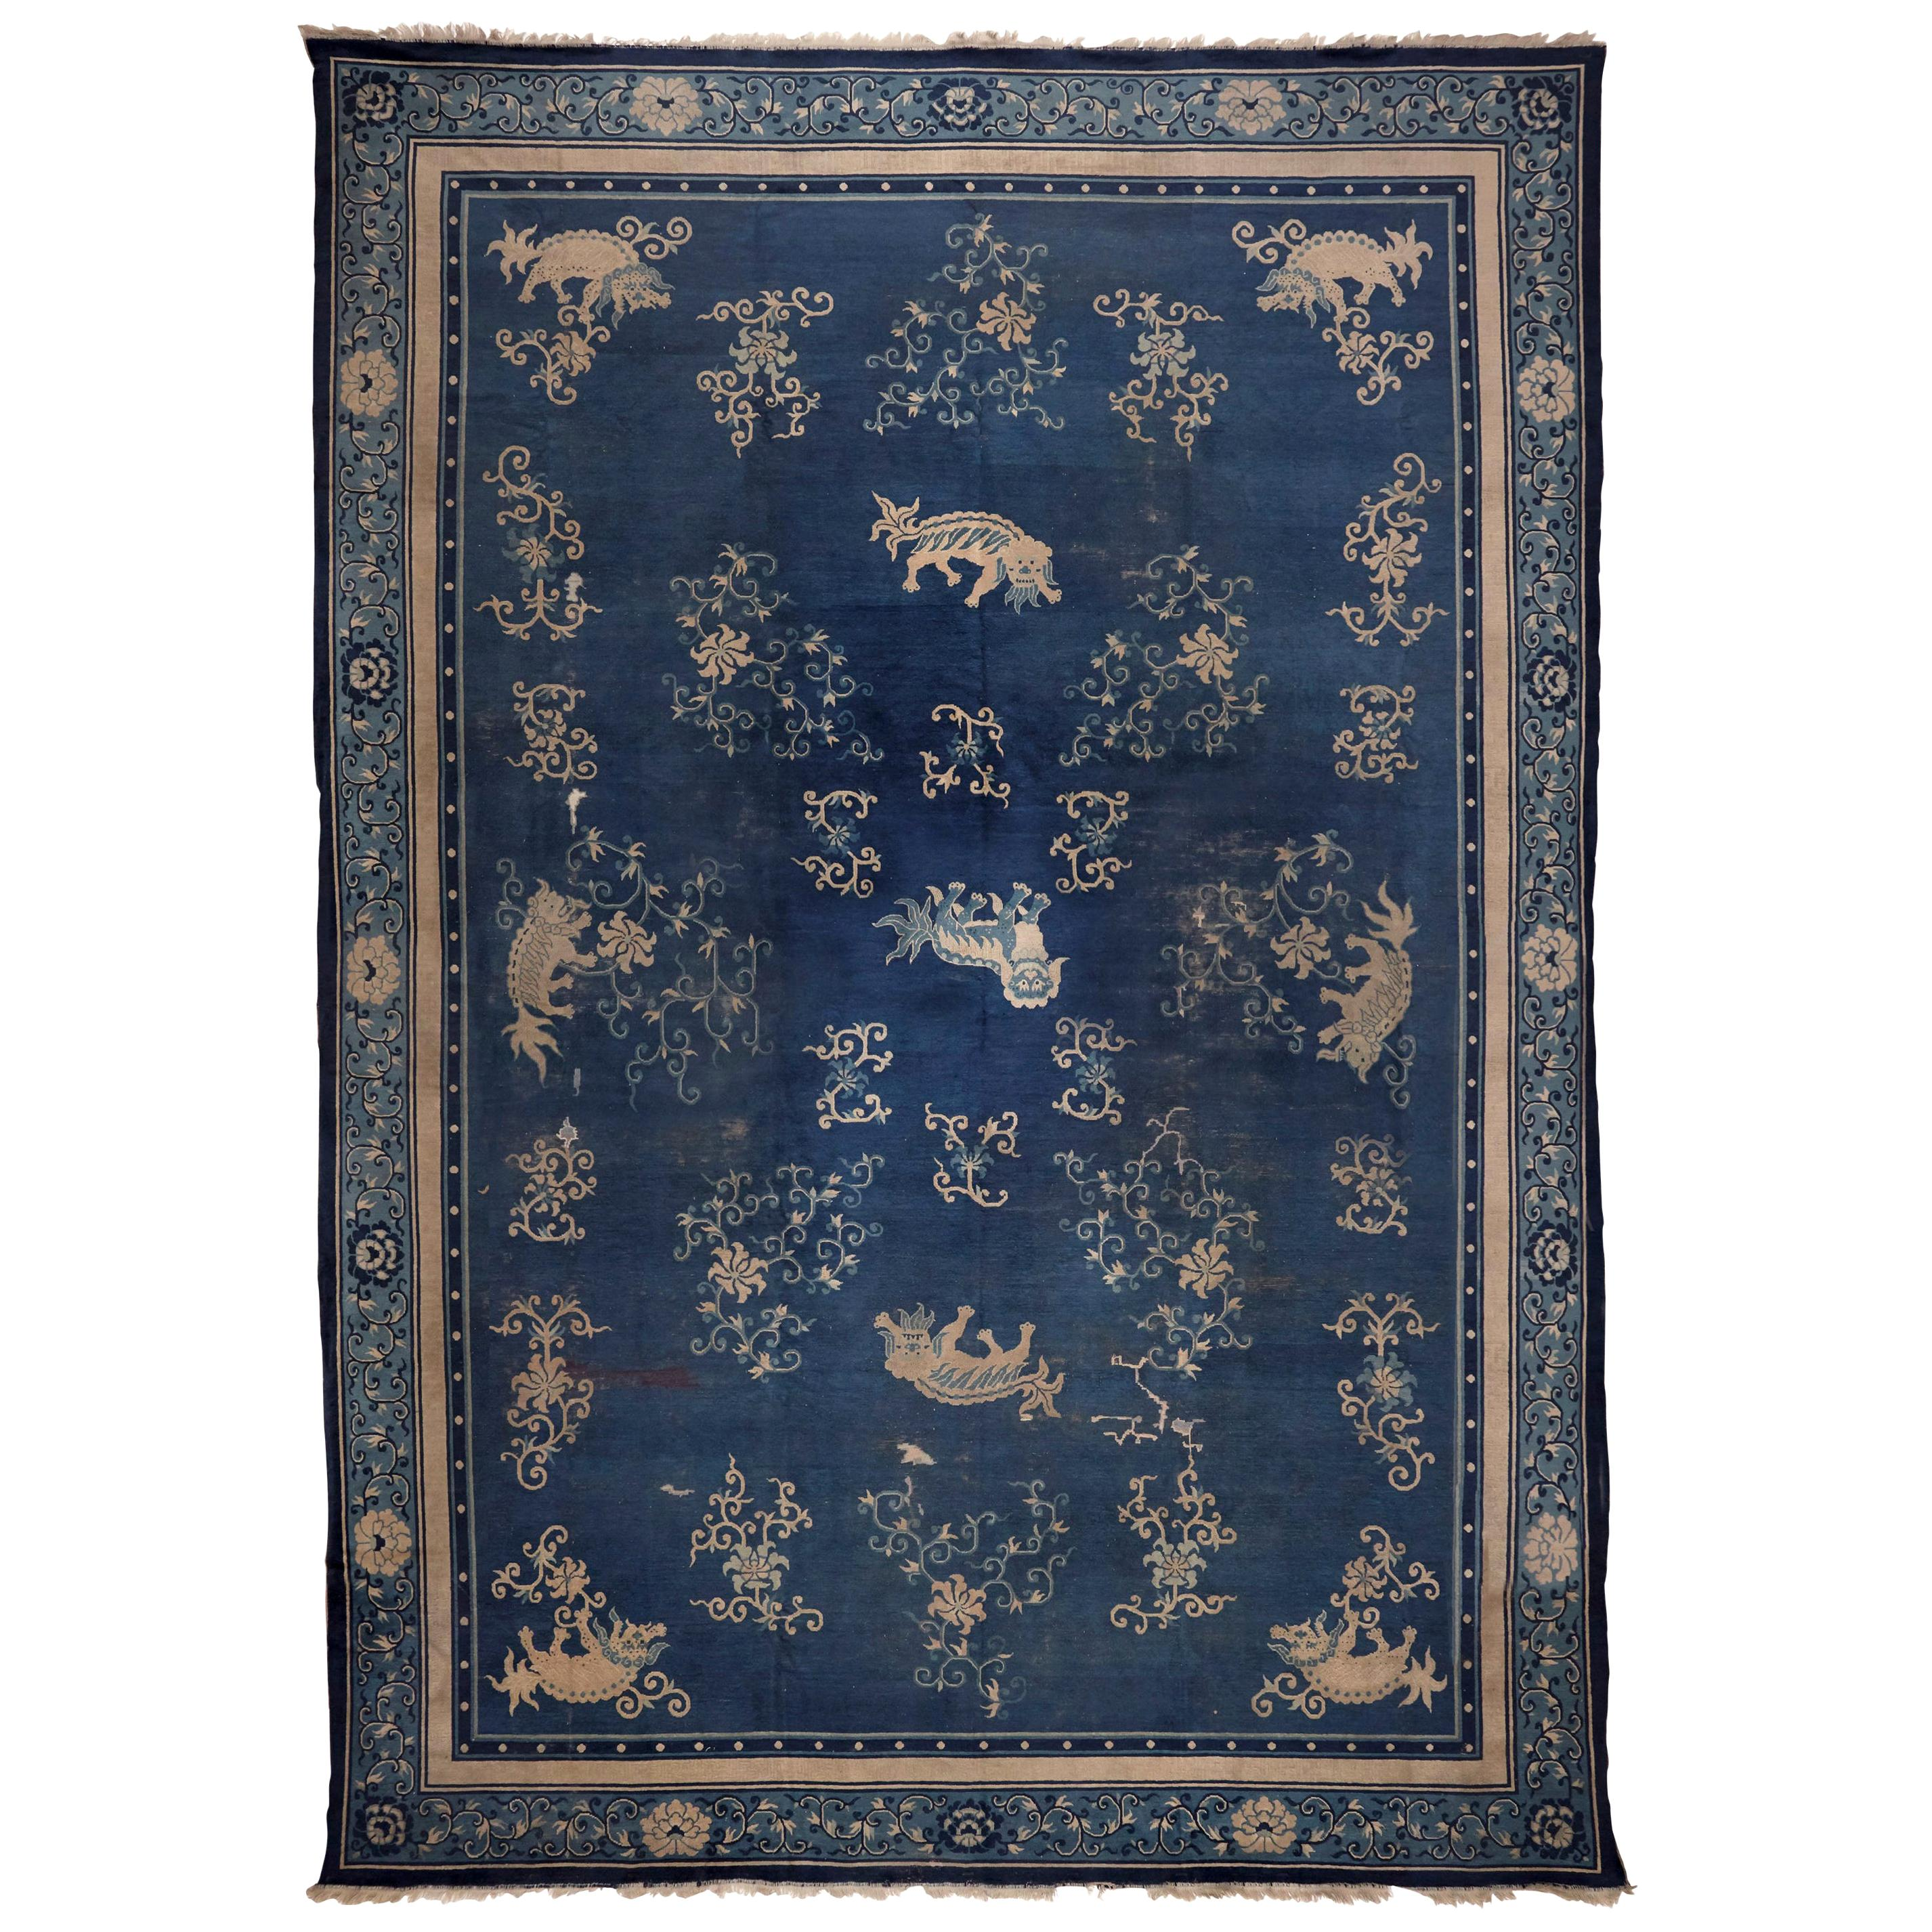 Ningshia, Chinese Export, Hand Knotted Wool, Antique Rug, circa 1920